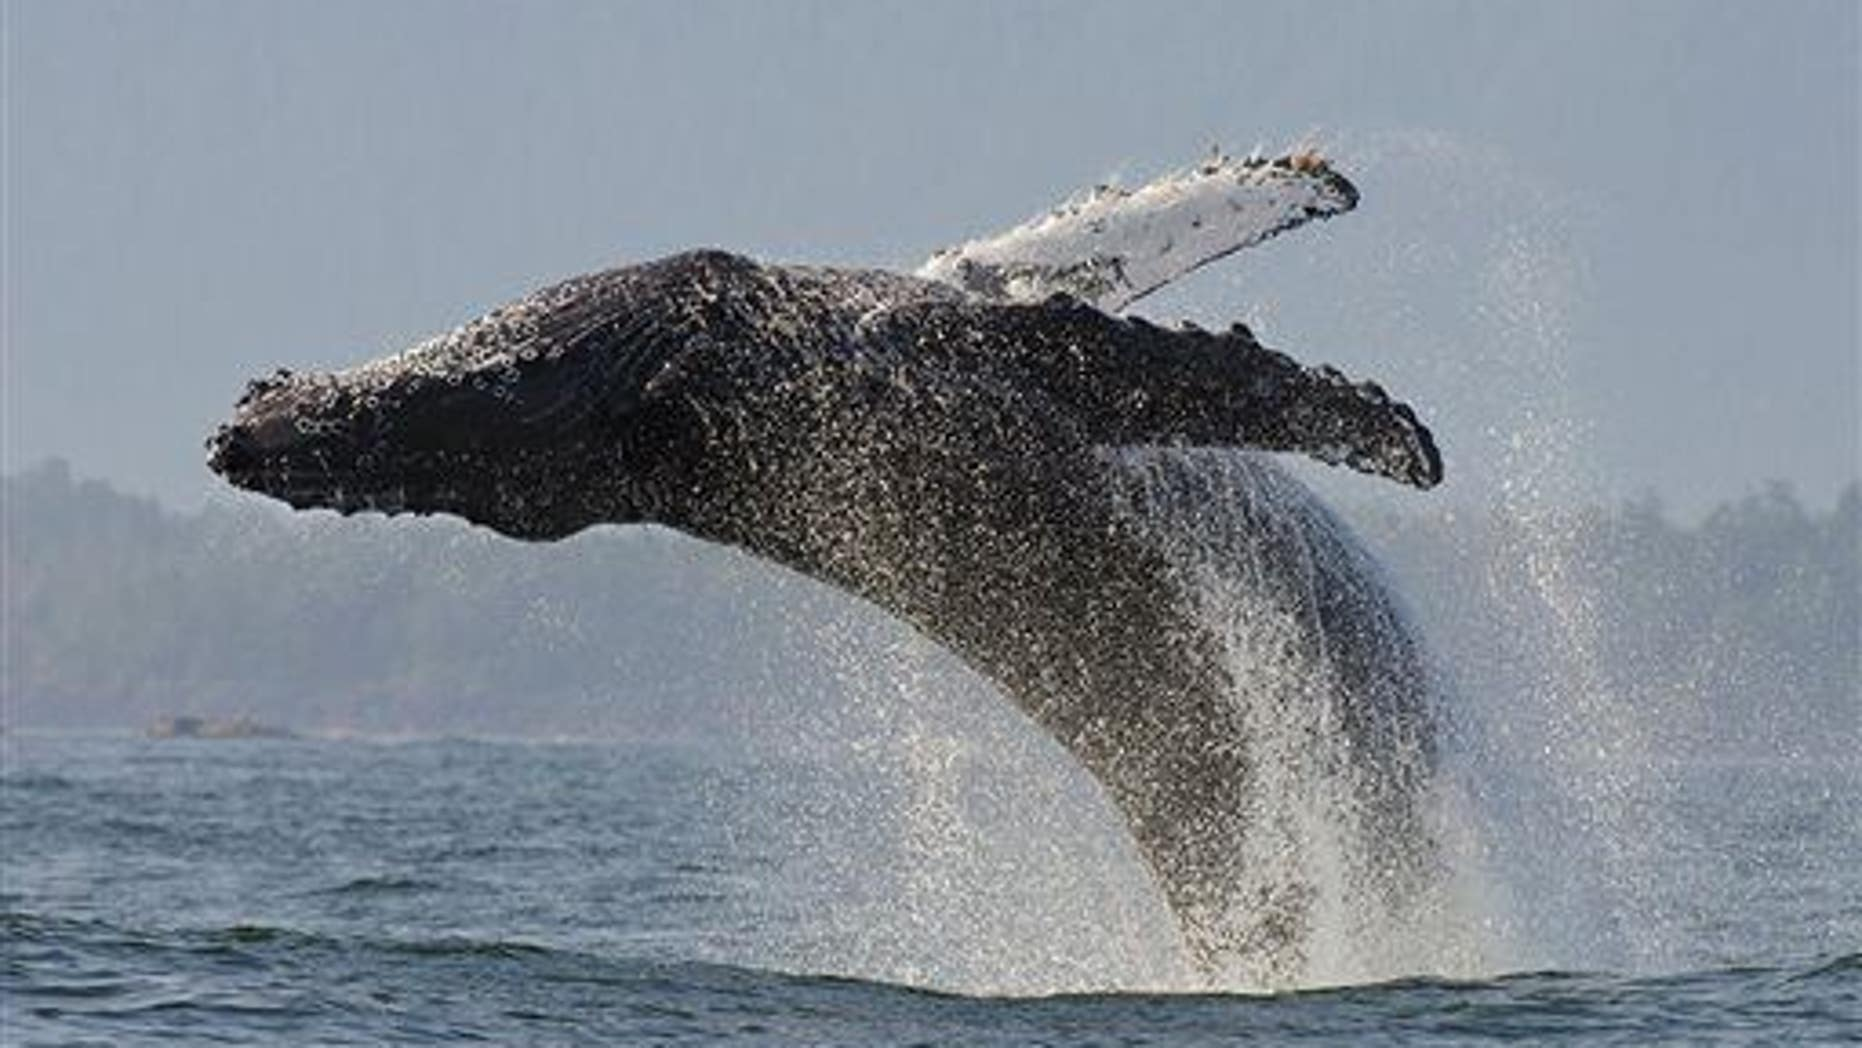 This undated image released by PBS shows a humpback whale.